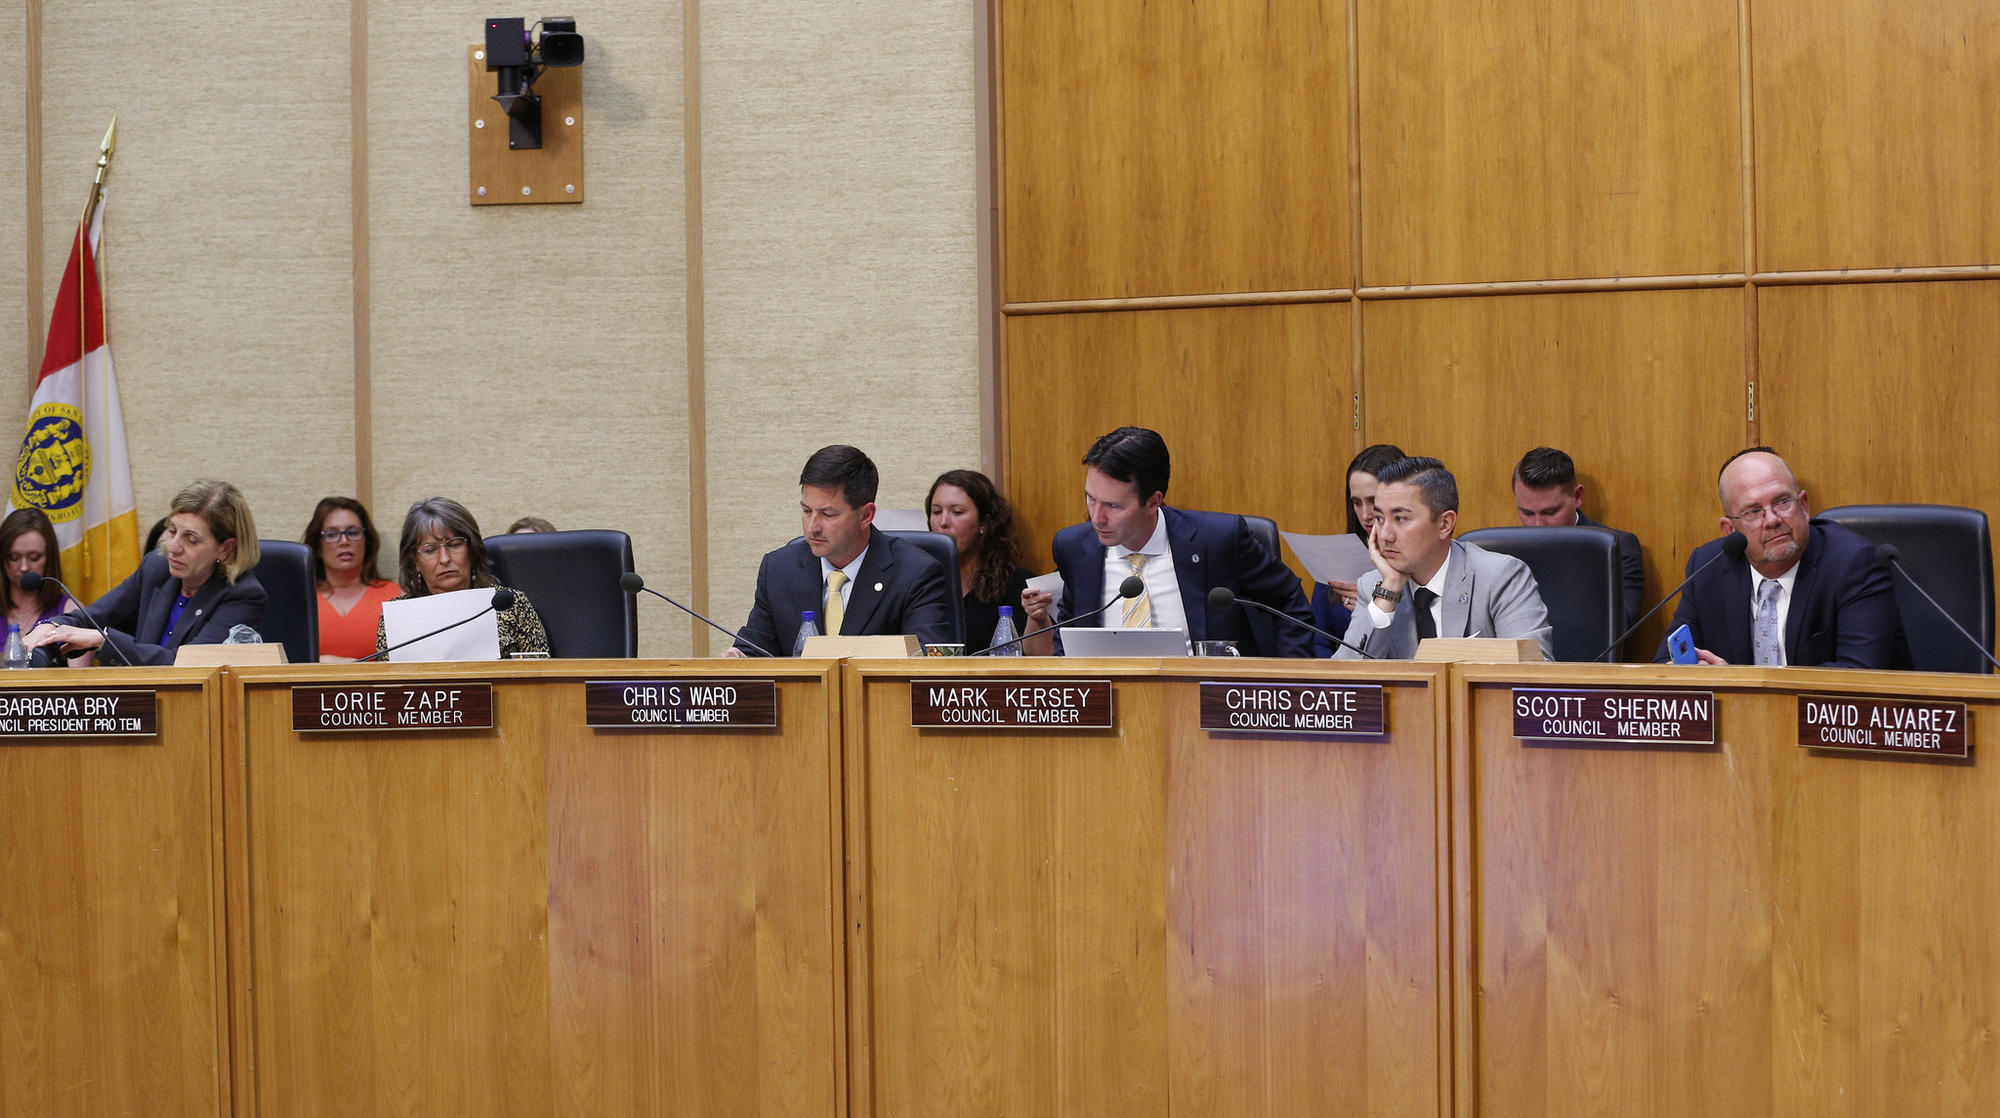 Late Monday afternoon San Diego City Council voted on a proposal by Council Members, Barbara Bay and